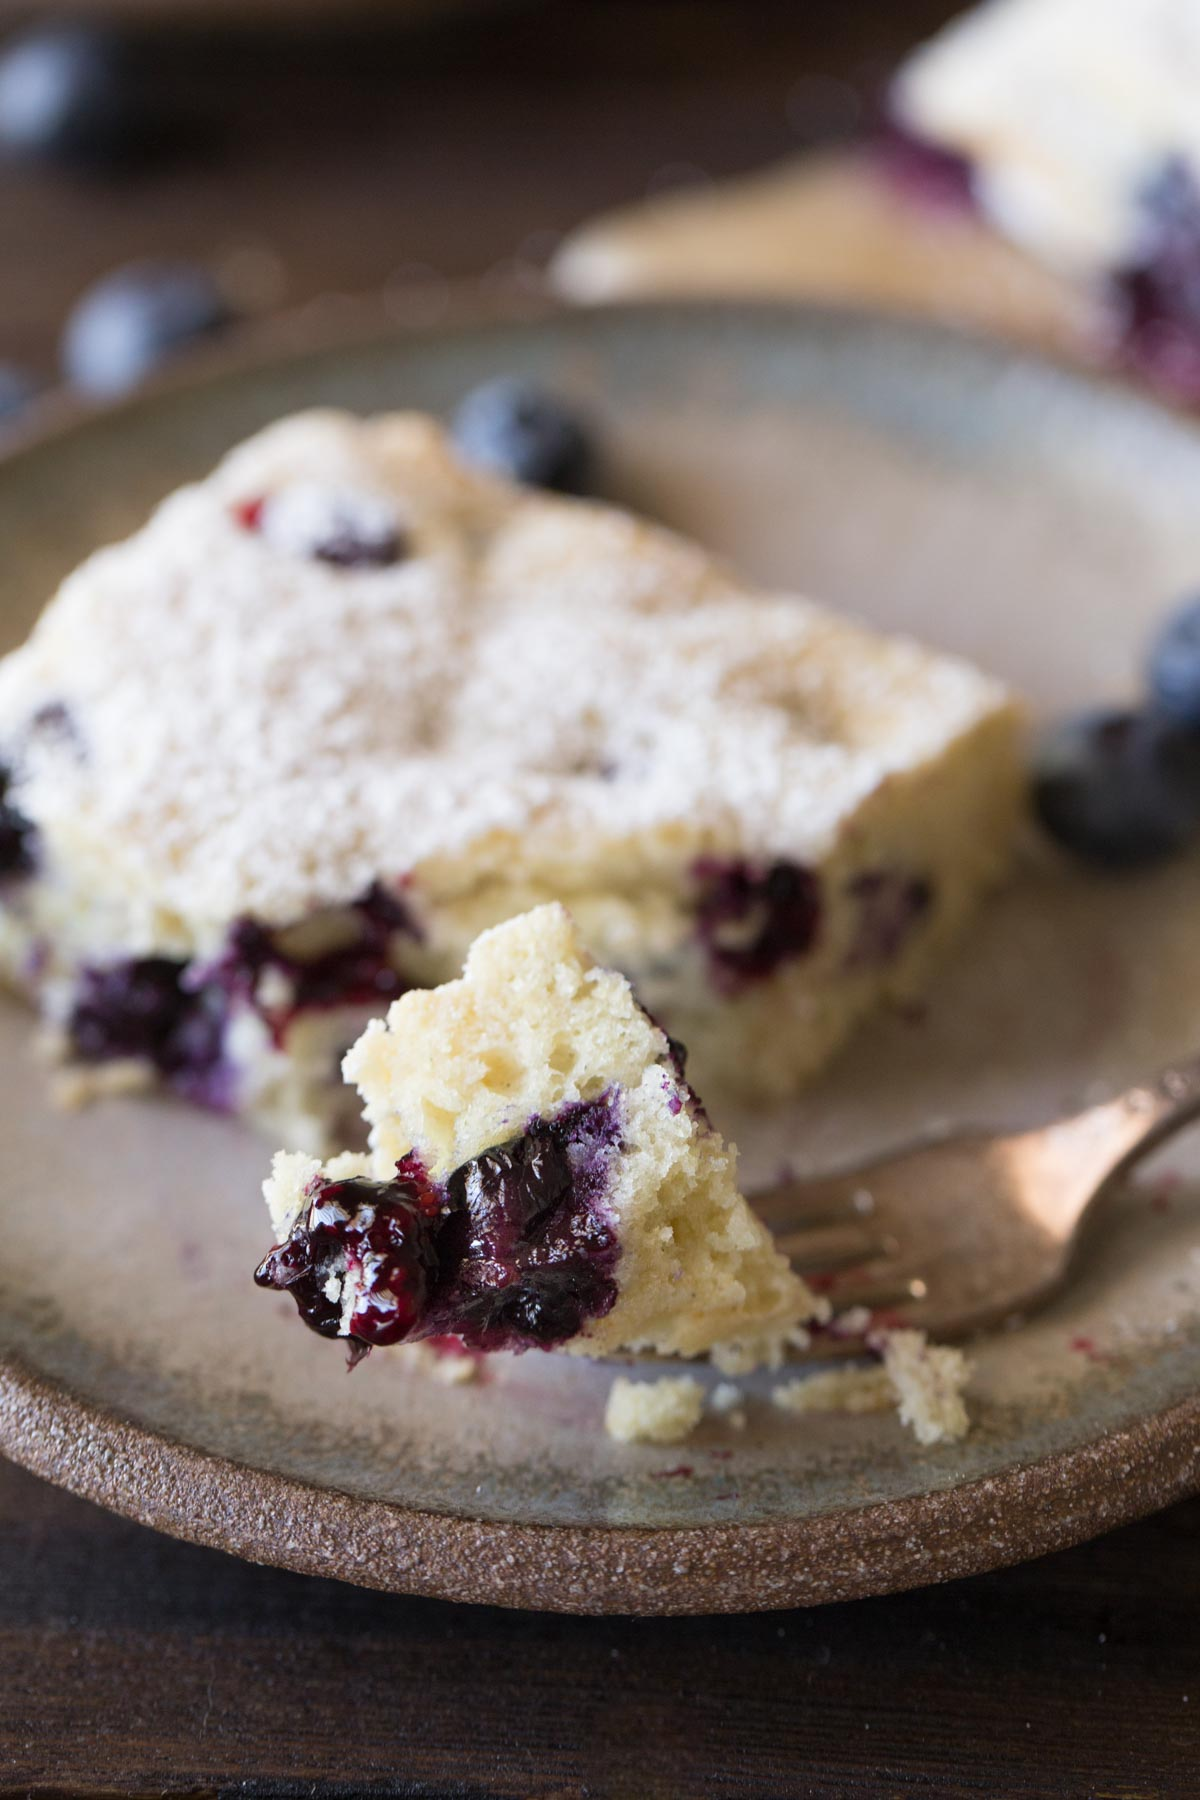 A piece of Buttermilk Blueberry Snack Cake on a plate, with a fork with a bite of cake on it.